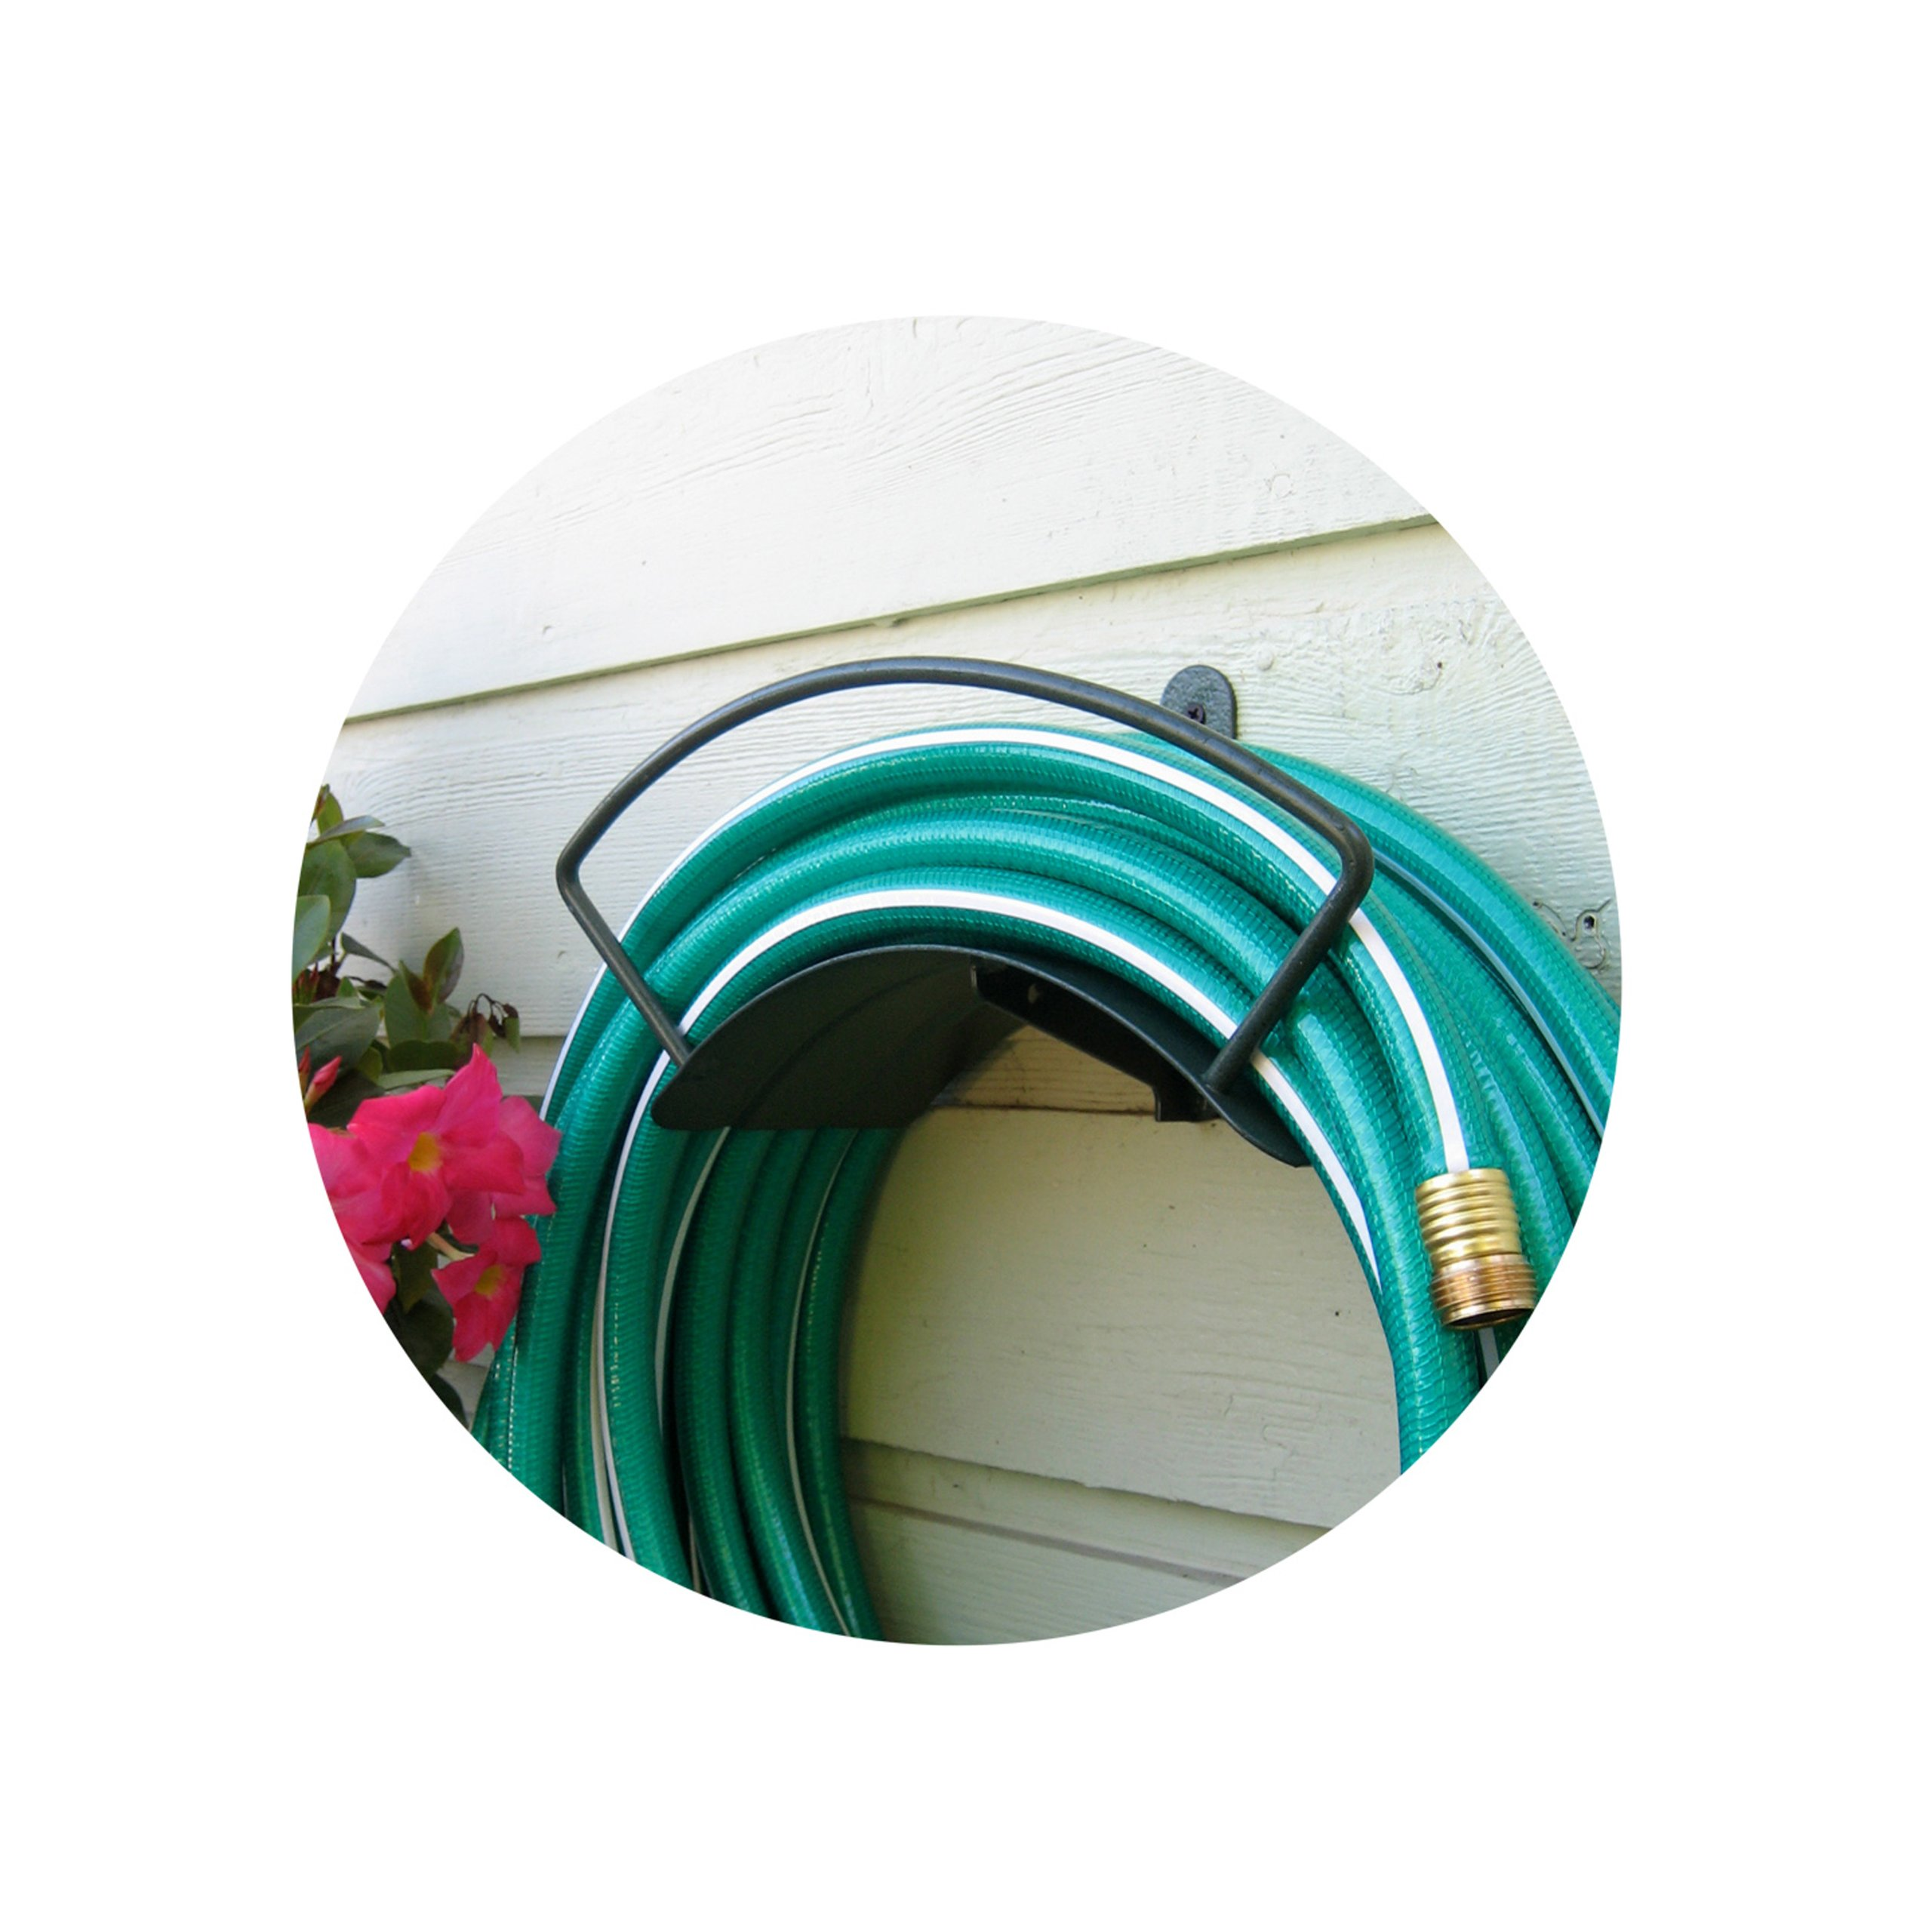 Yard Butler Deluxe Heavy Duty Wall Mount Hose Hanger Easily Holds 100' Of 5/8' Hose Solid Steel Extra Bracing And Patented Design In and DECORATIVE DESIGNS IHCWM-1 Textured Forest Green by Yard Butler (Image #3)